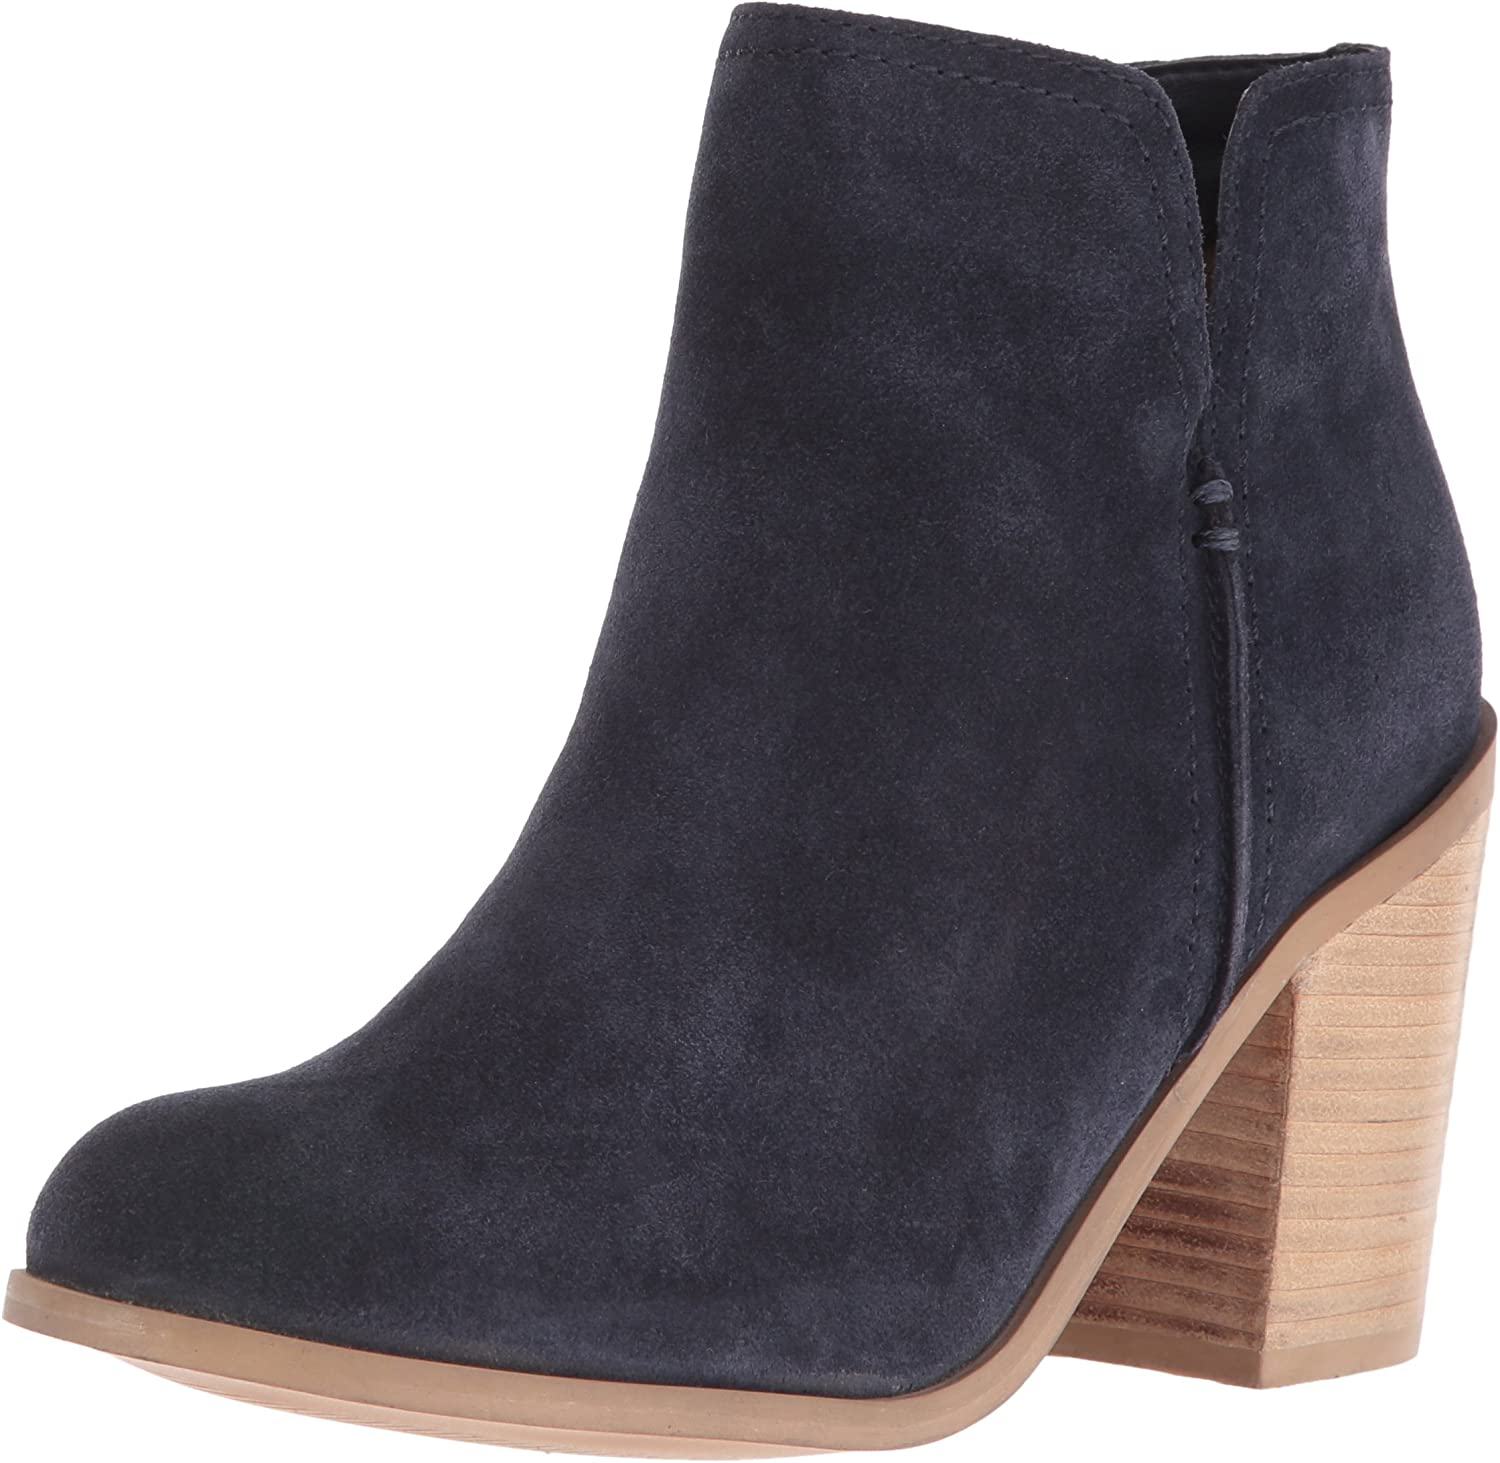 Kenneth Cole REACTION Women's Kite Fly Ankle Bootie